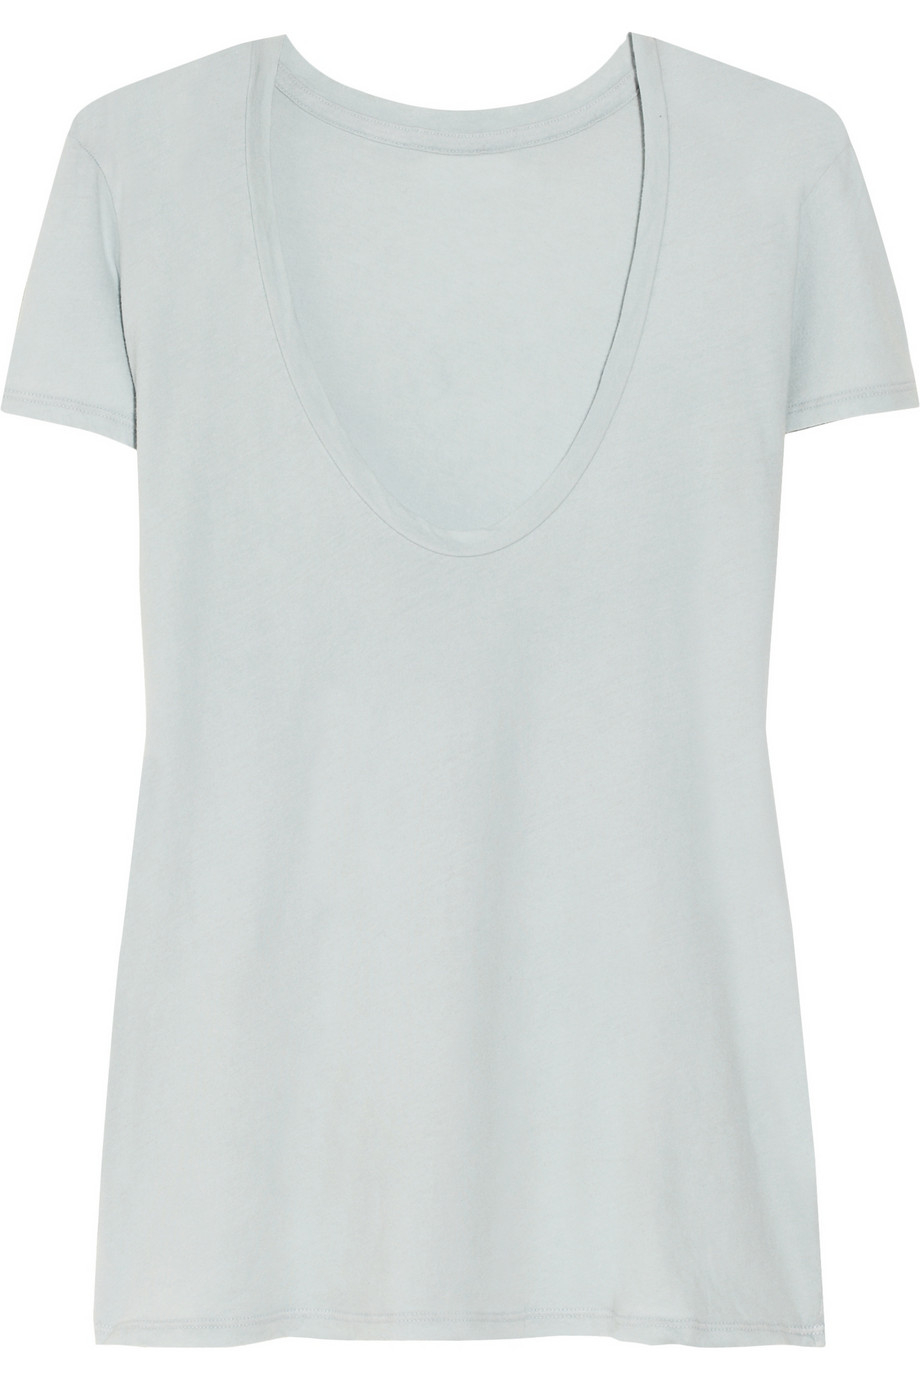 James perse v neck t shirt in black lyst for James perse t shirts sale